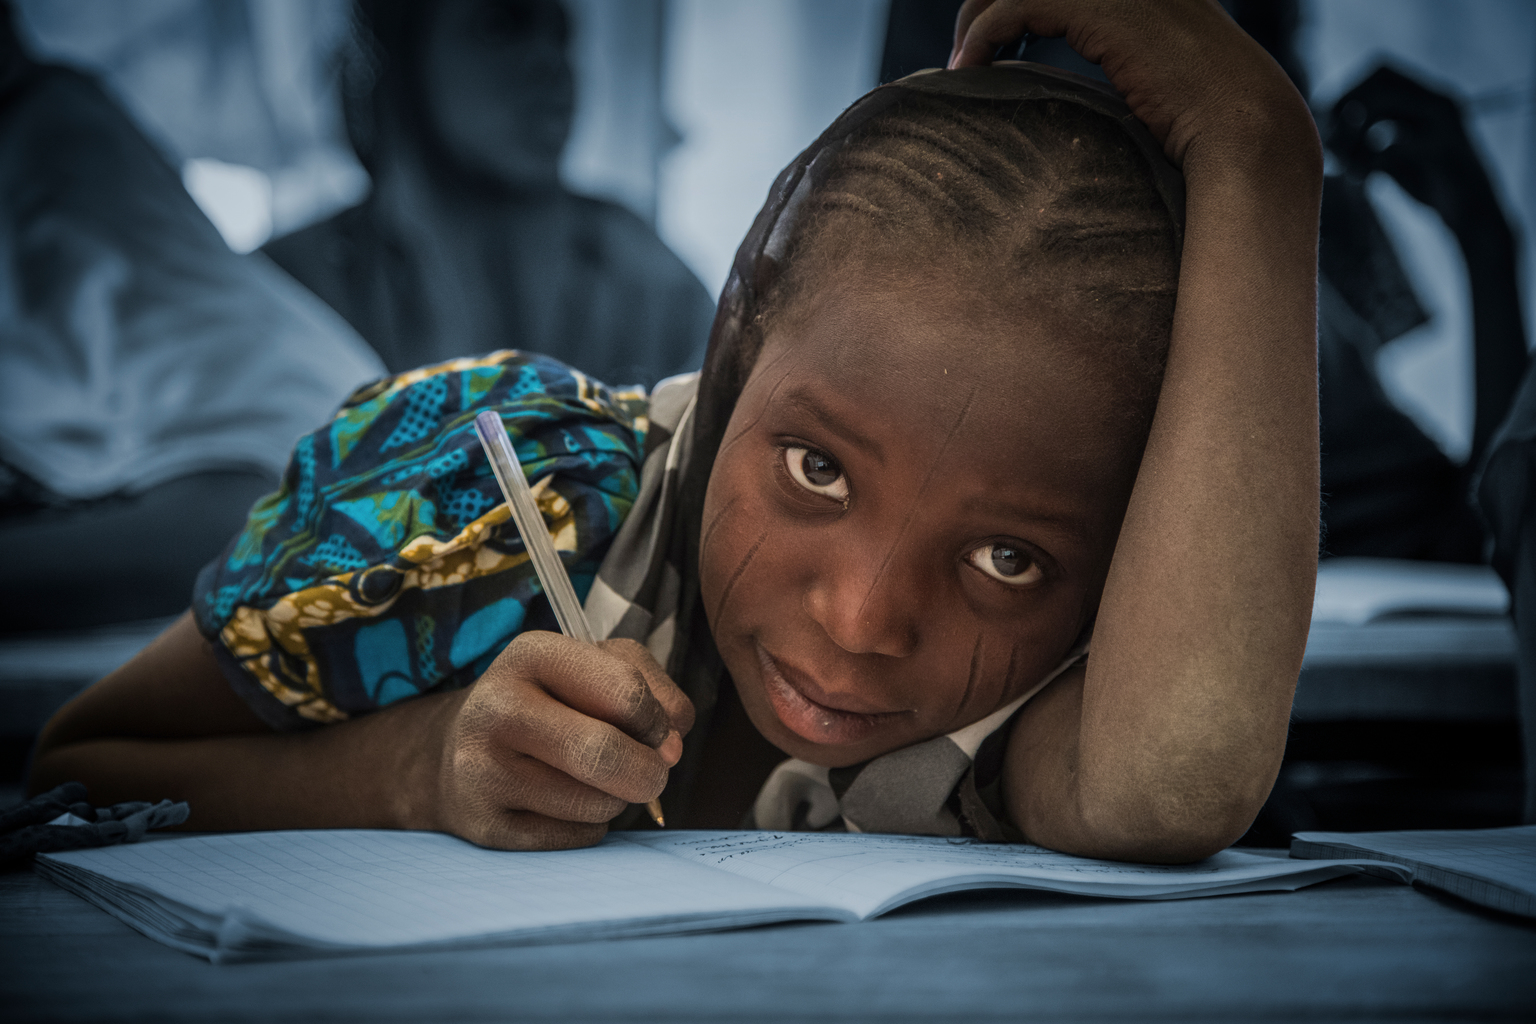 A young girl holding a pen rests her head and arm on the open notebook on the desk in front of her as she looks up.